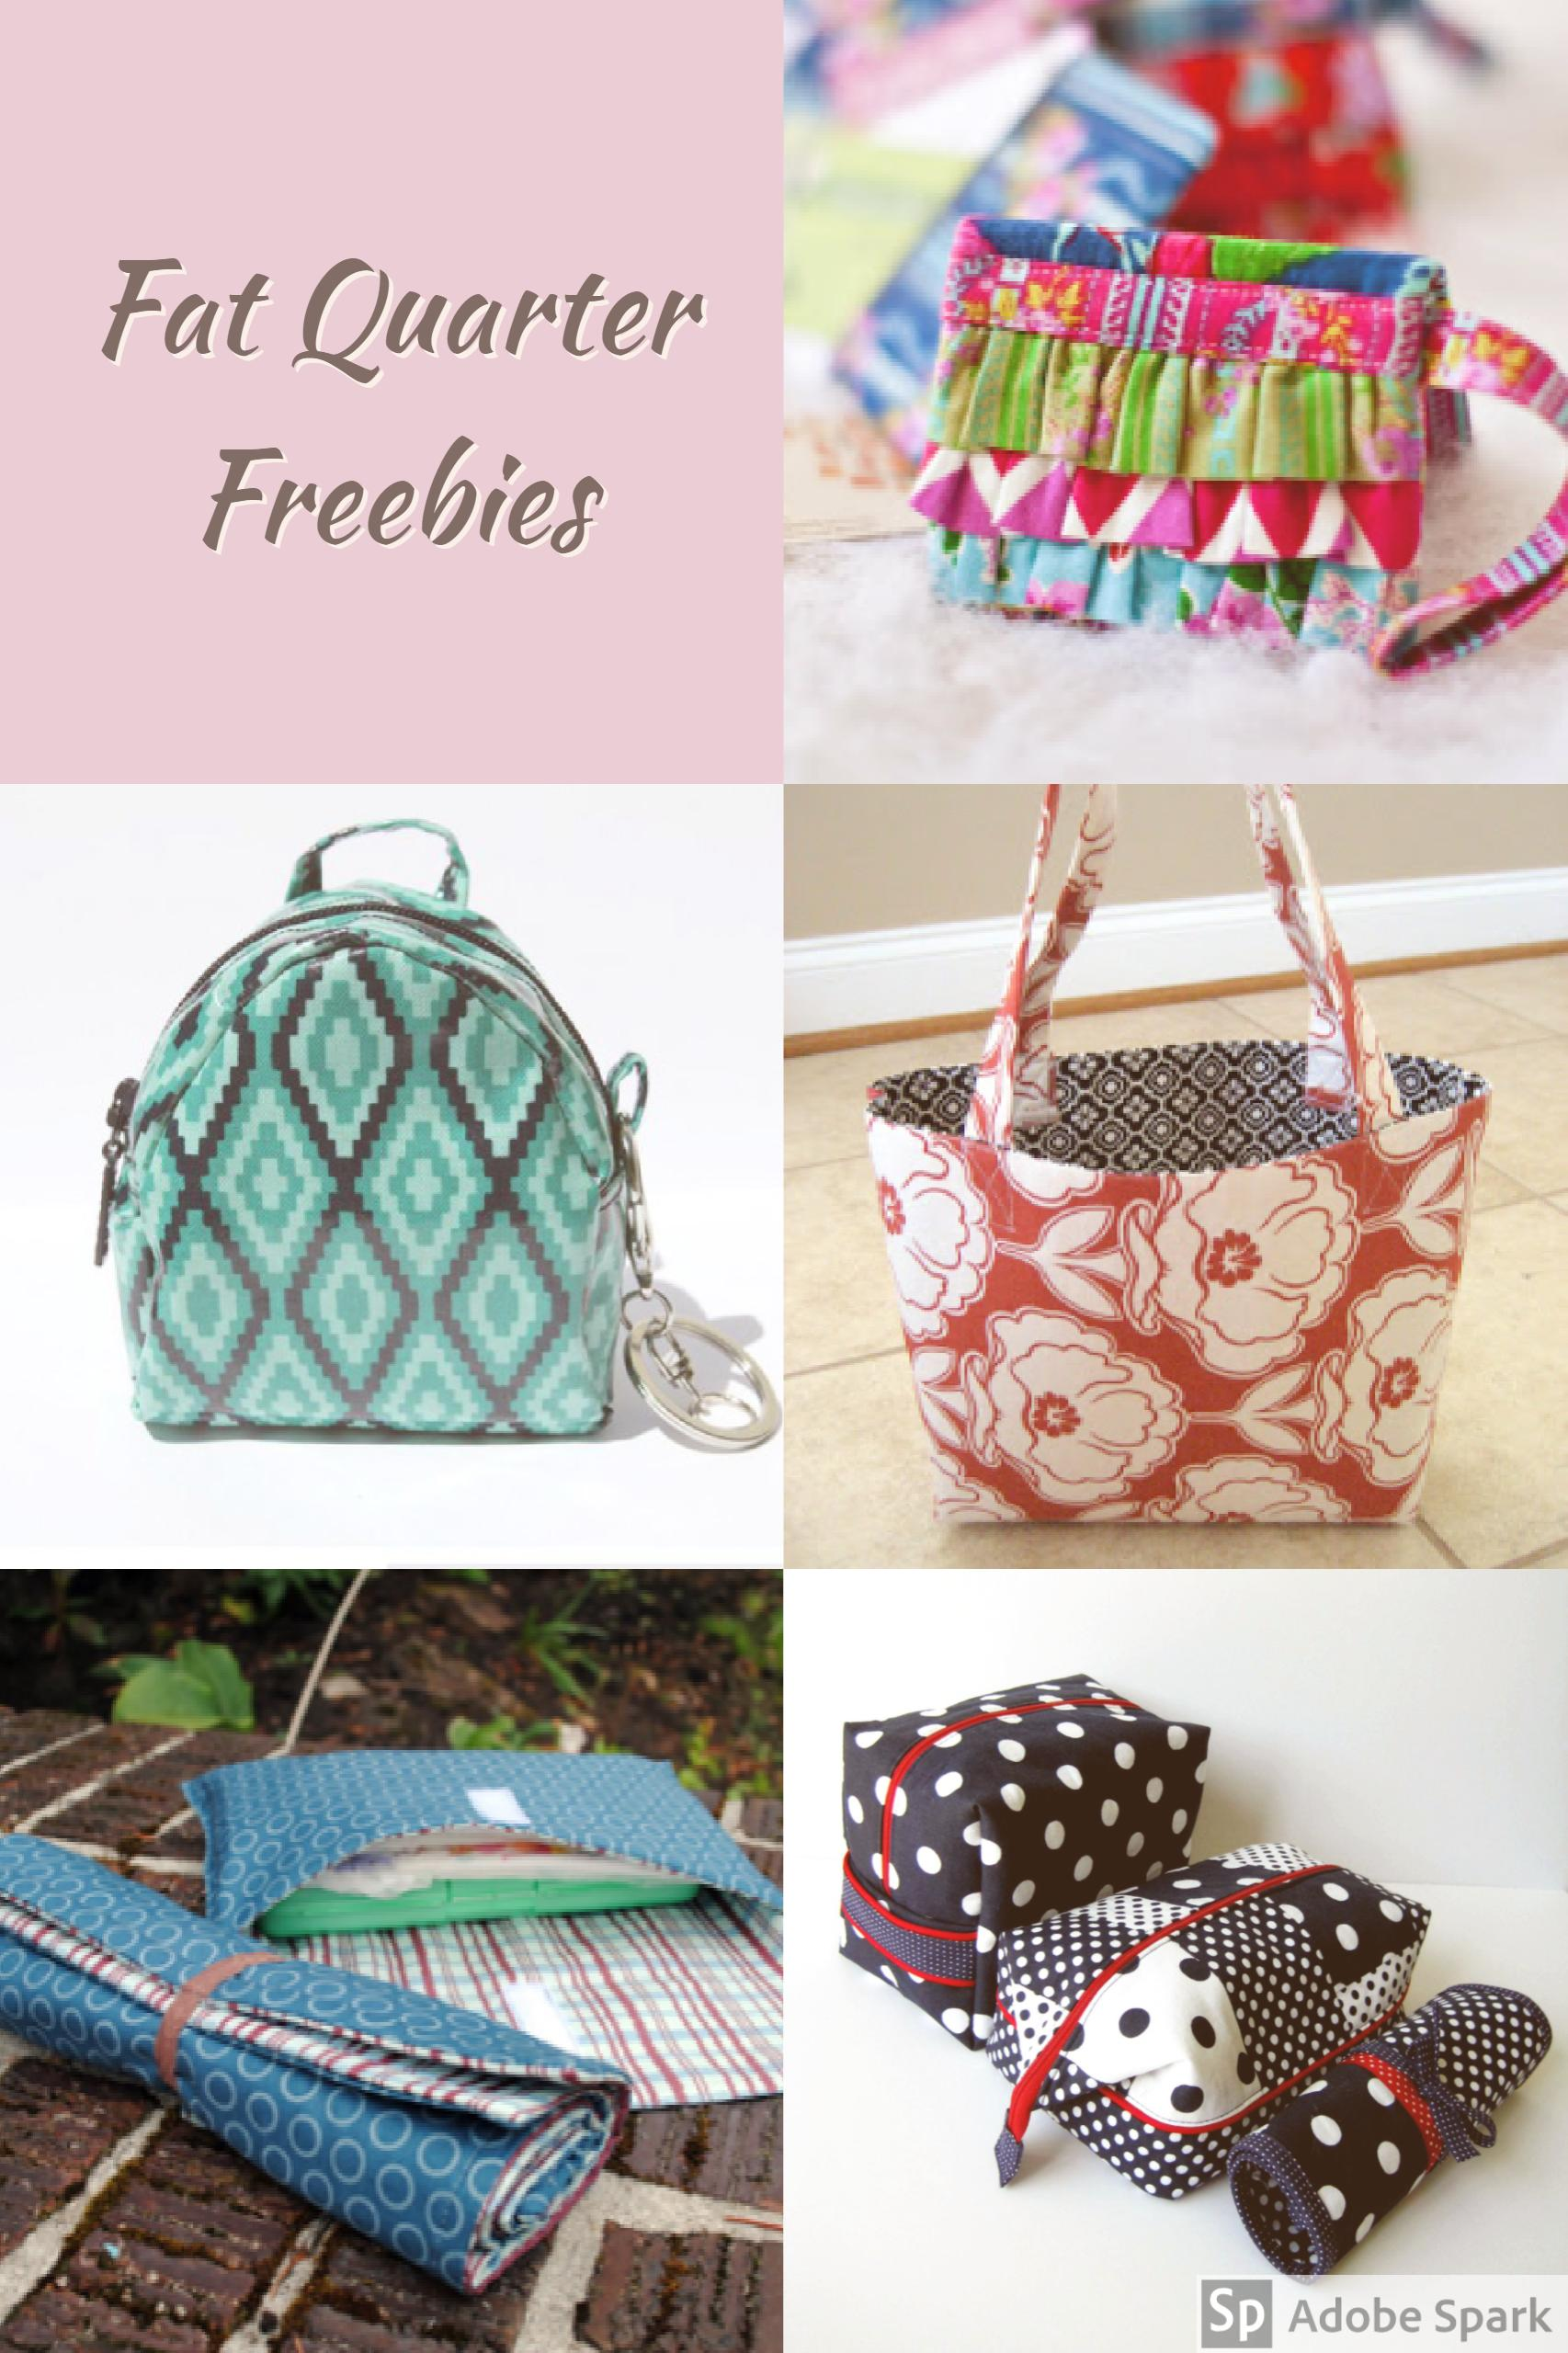 Fat Quarter Freebies